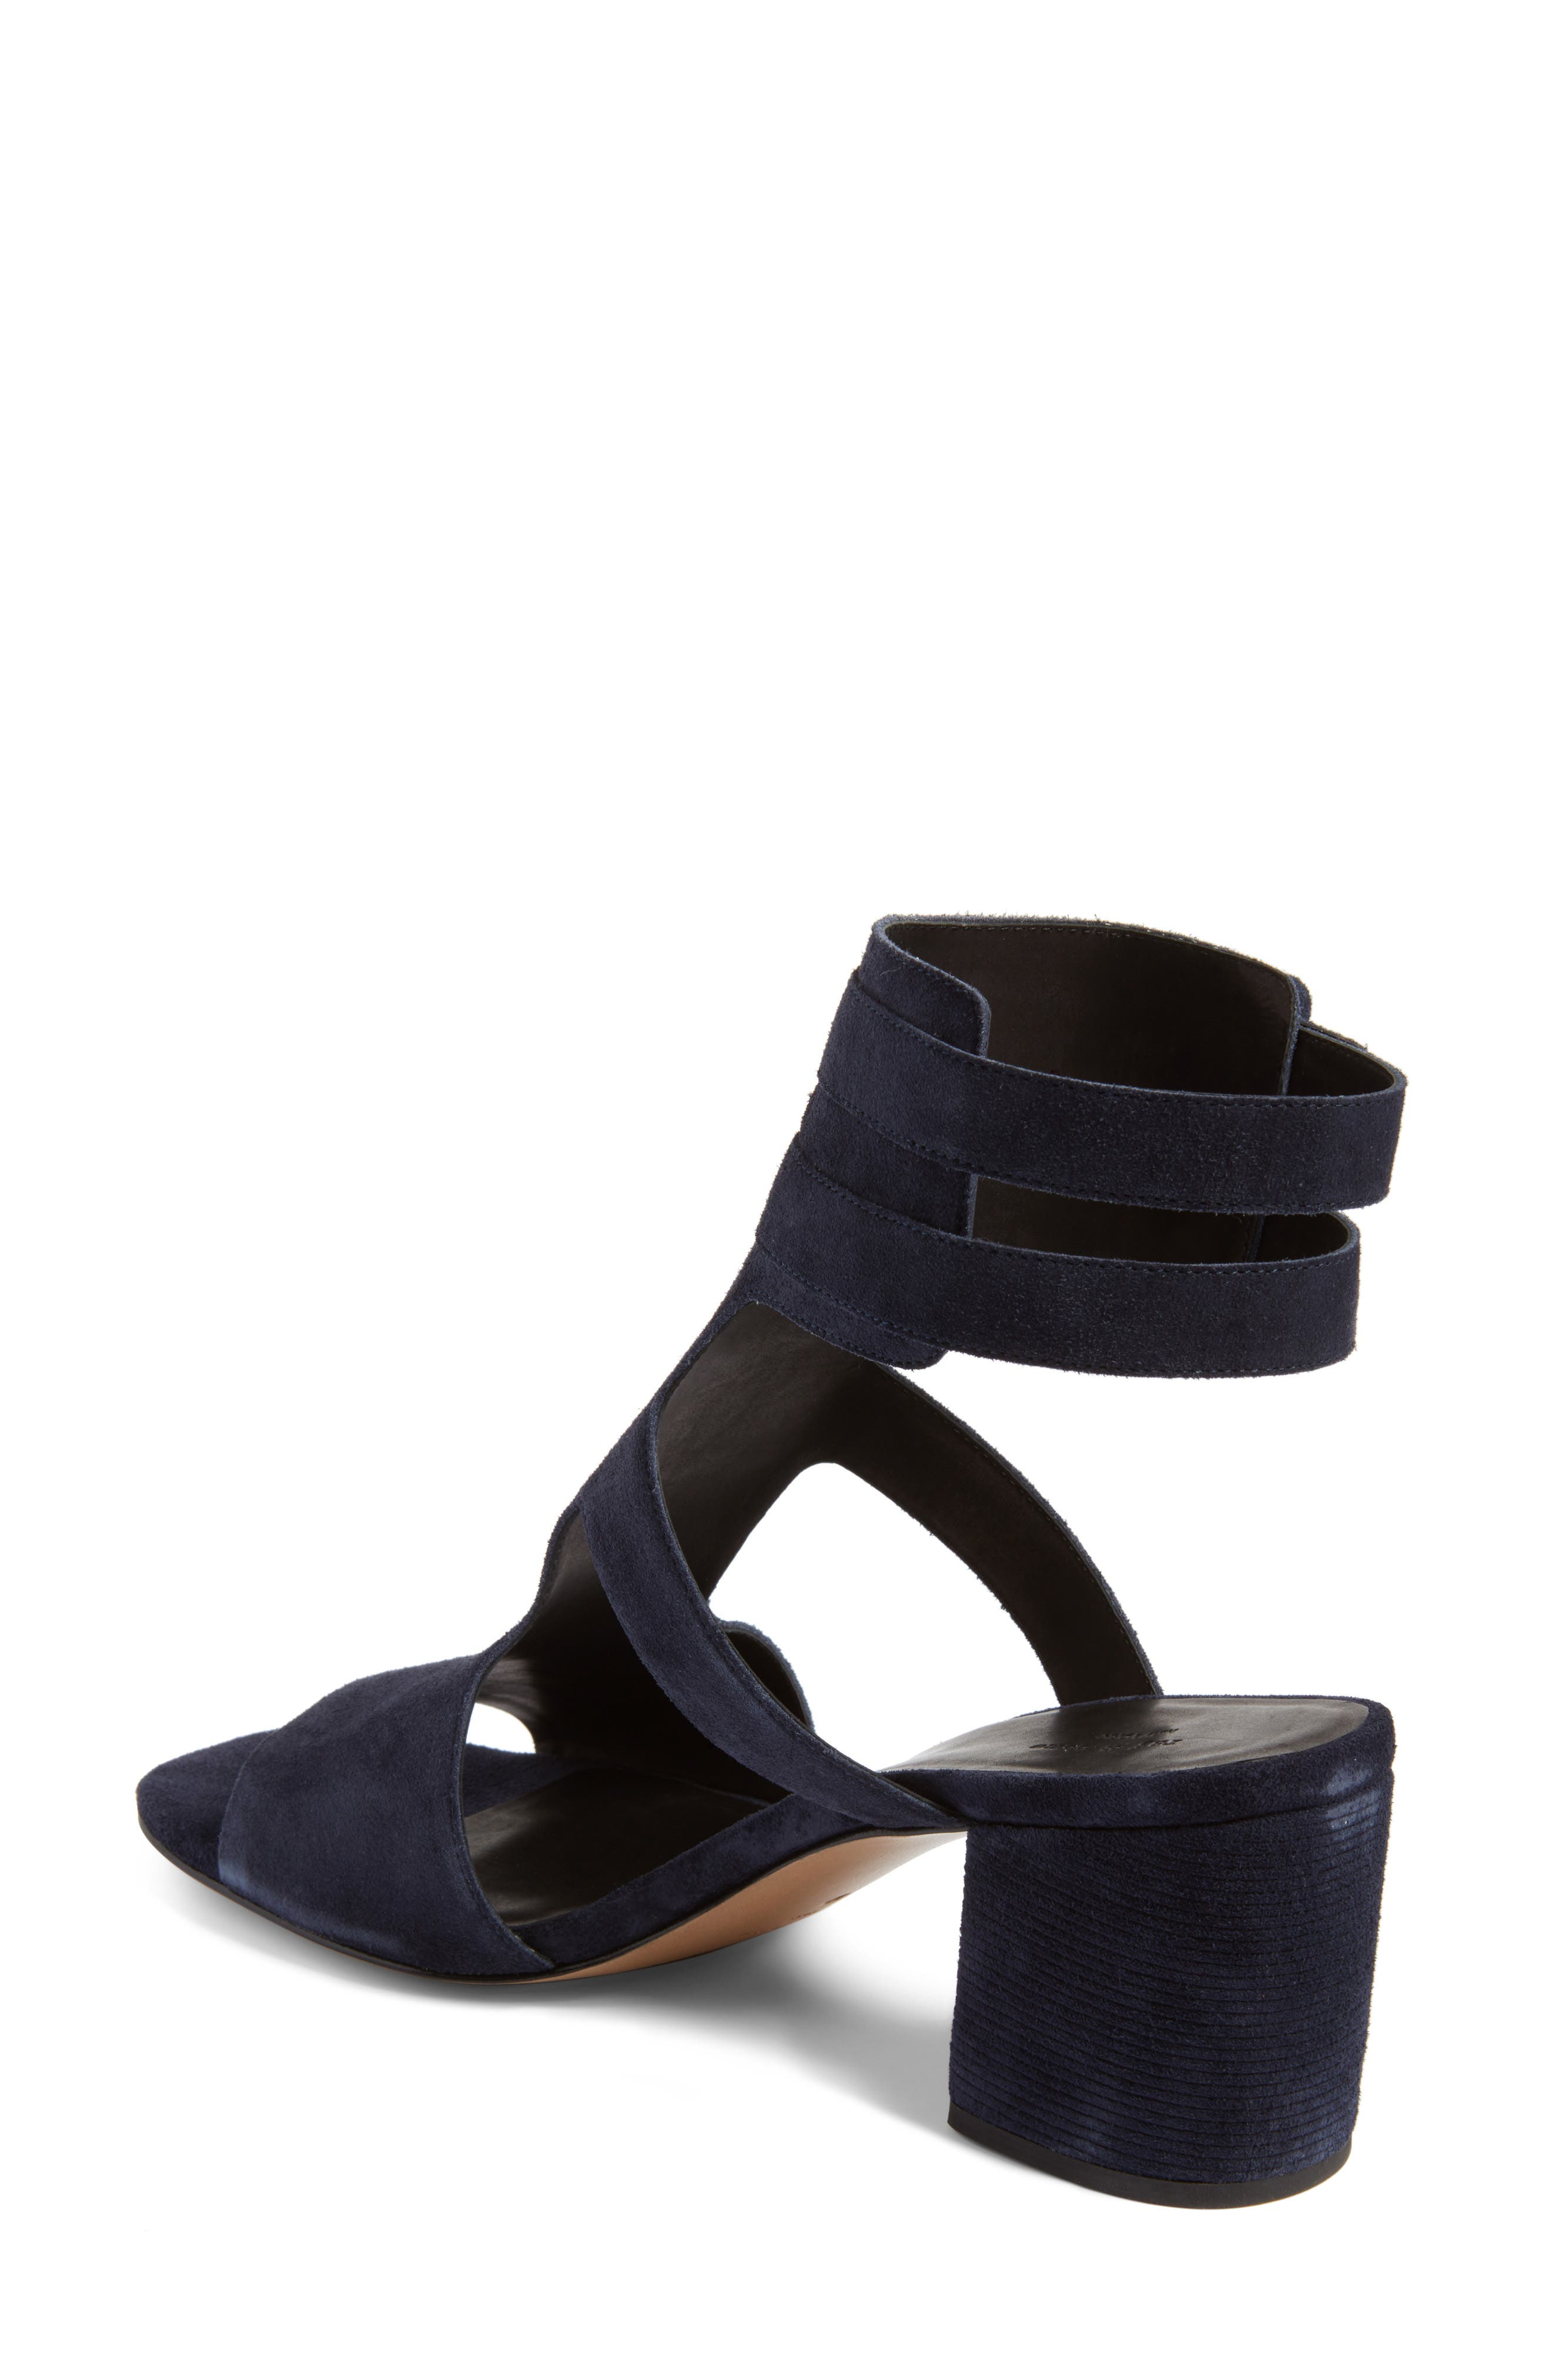 Madison Buckle Cuff Sandal,                             Alternate thumbnail 2, color,                             427